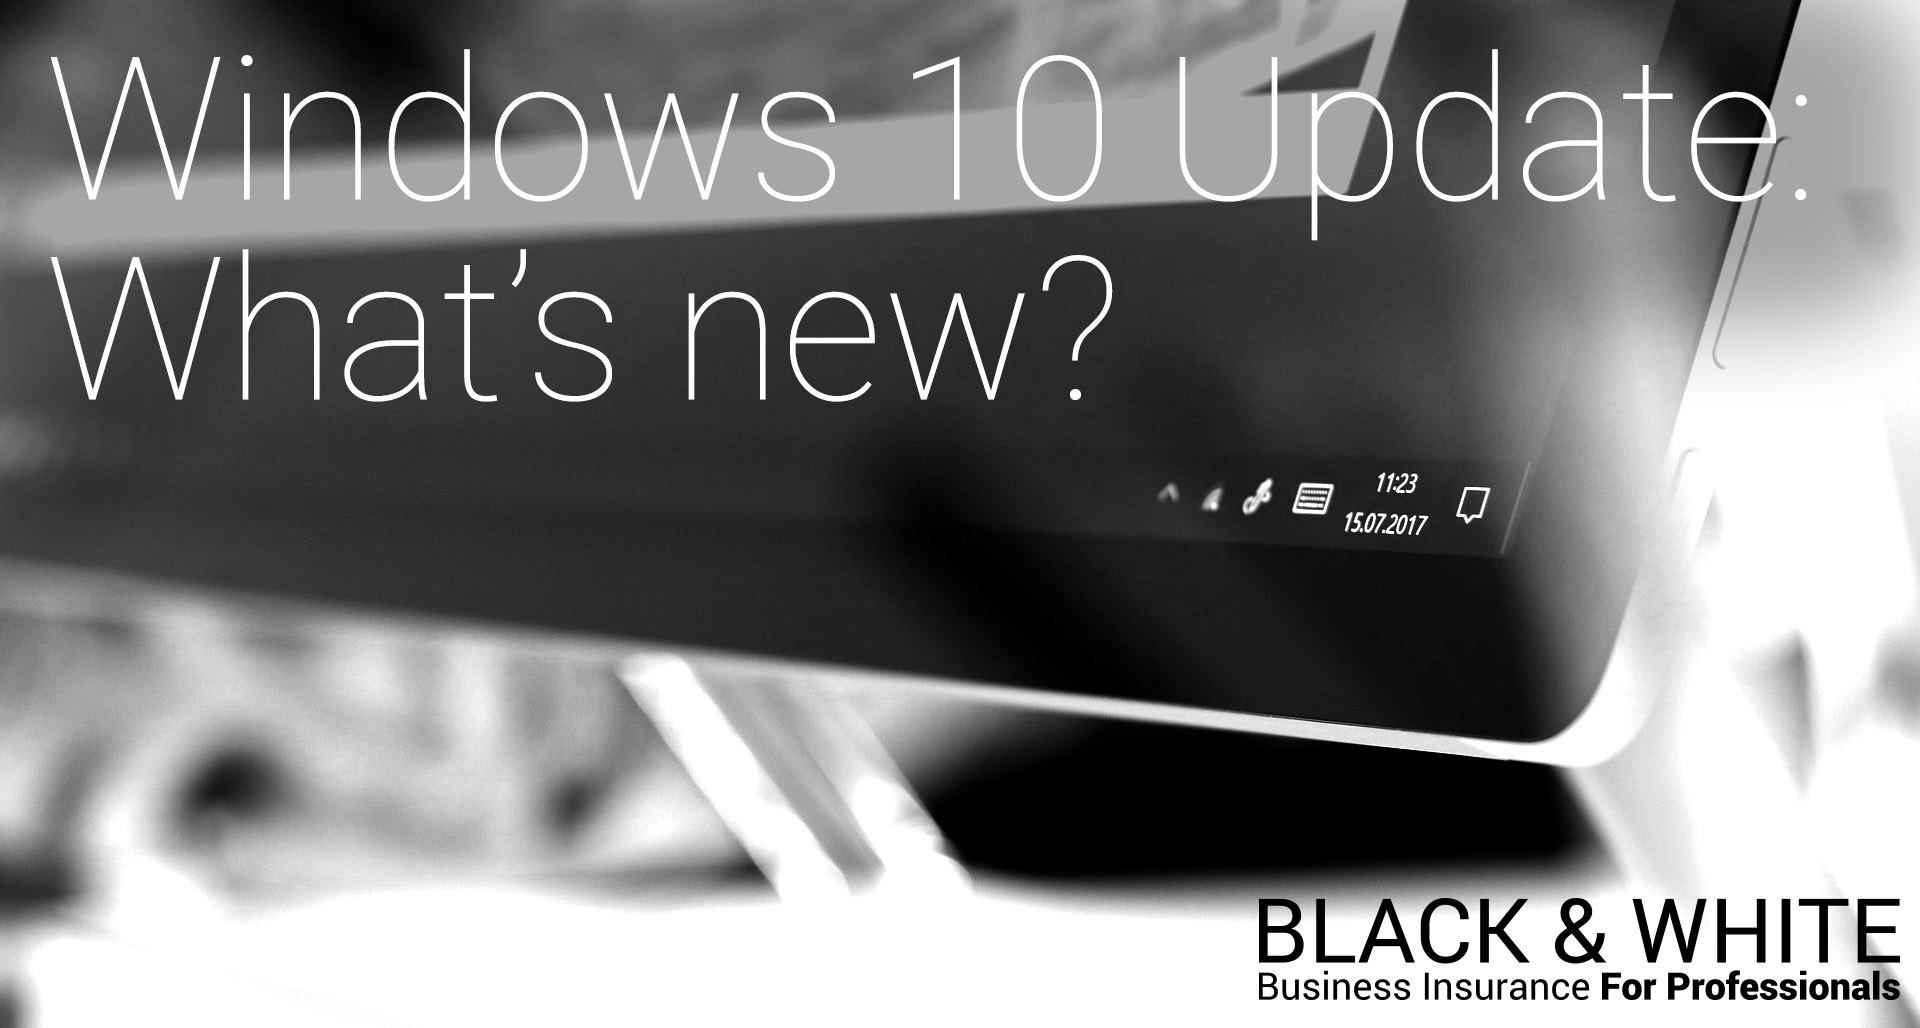 Should I update Windows 10? | Black and White